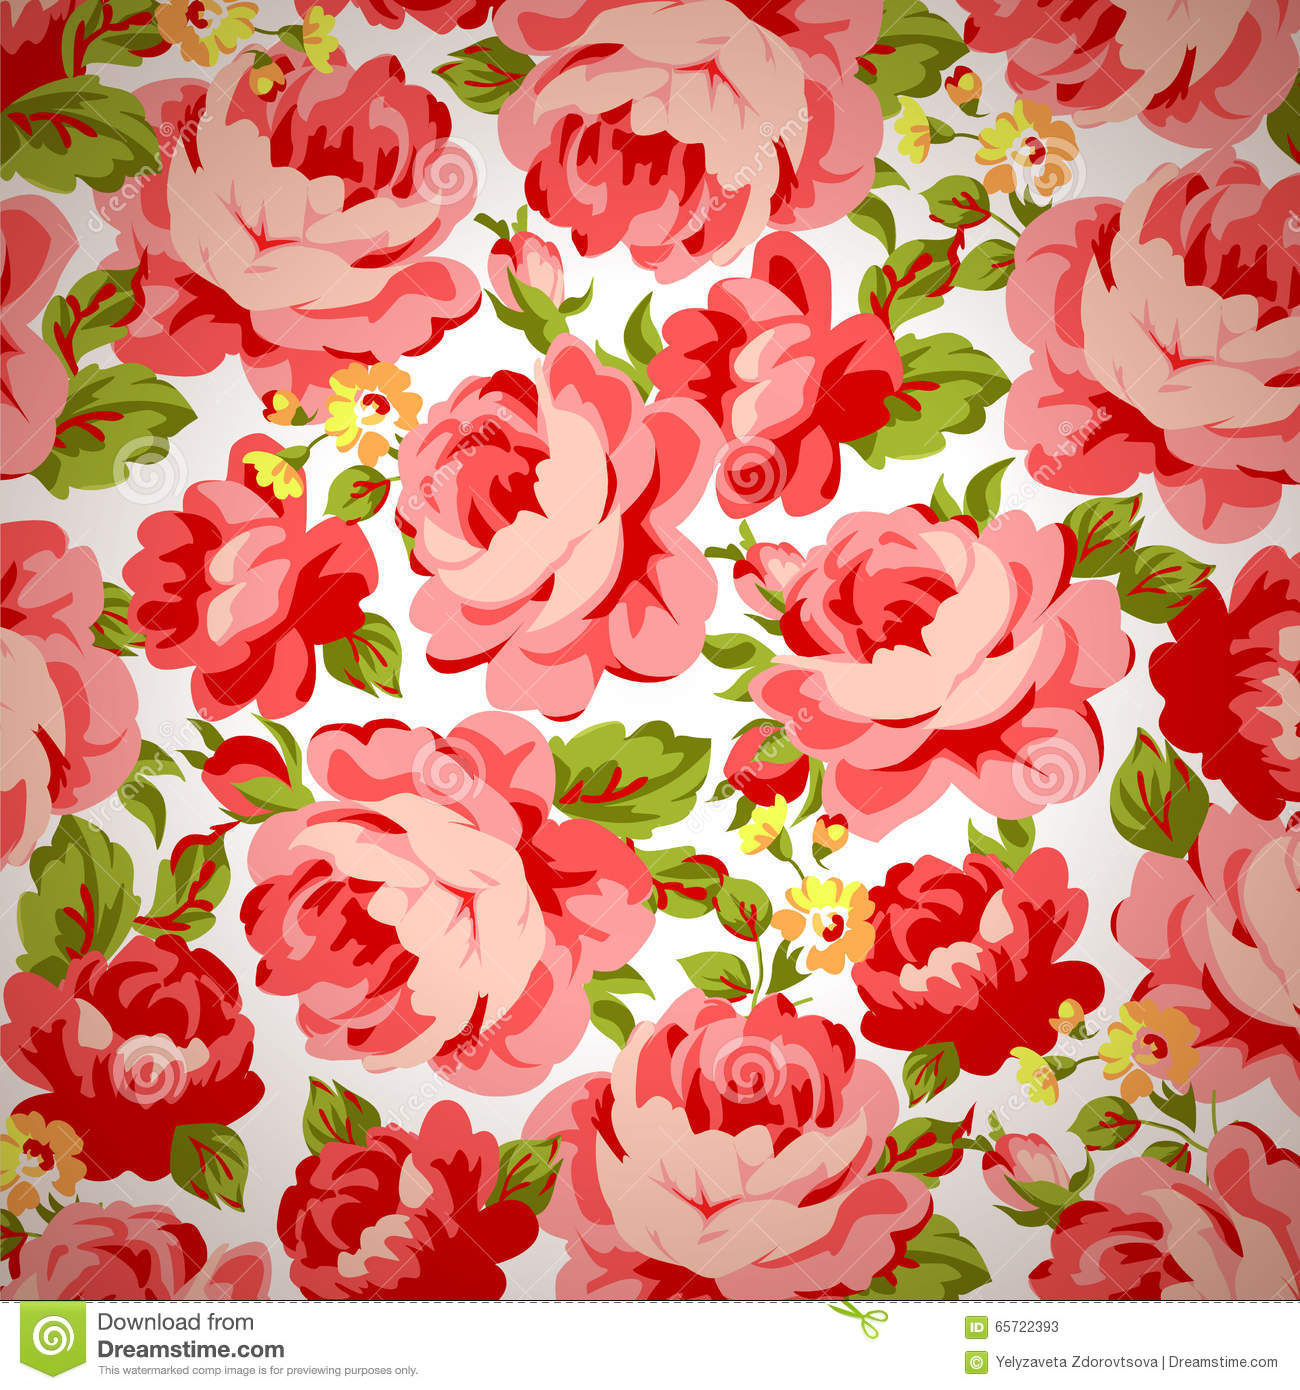 Vintage Floral - Antique/Rose fabric | Country Weekend ... |Vintage Floral Rose Pattern